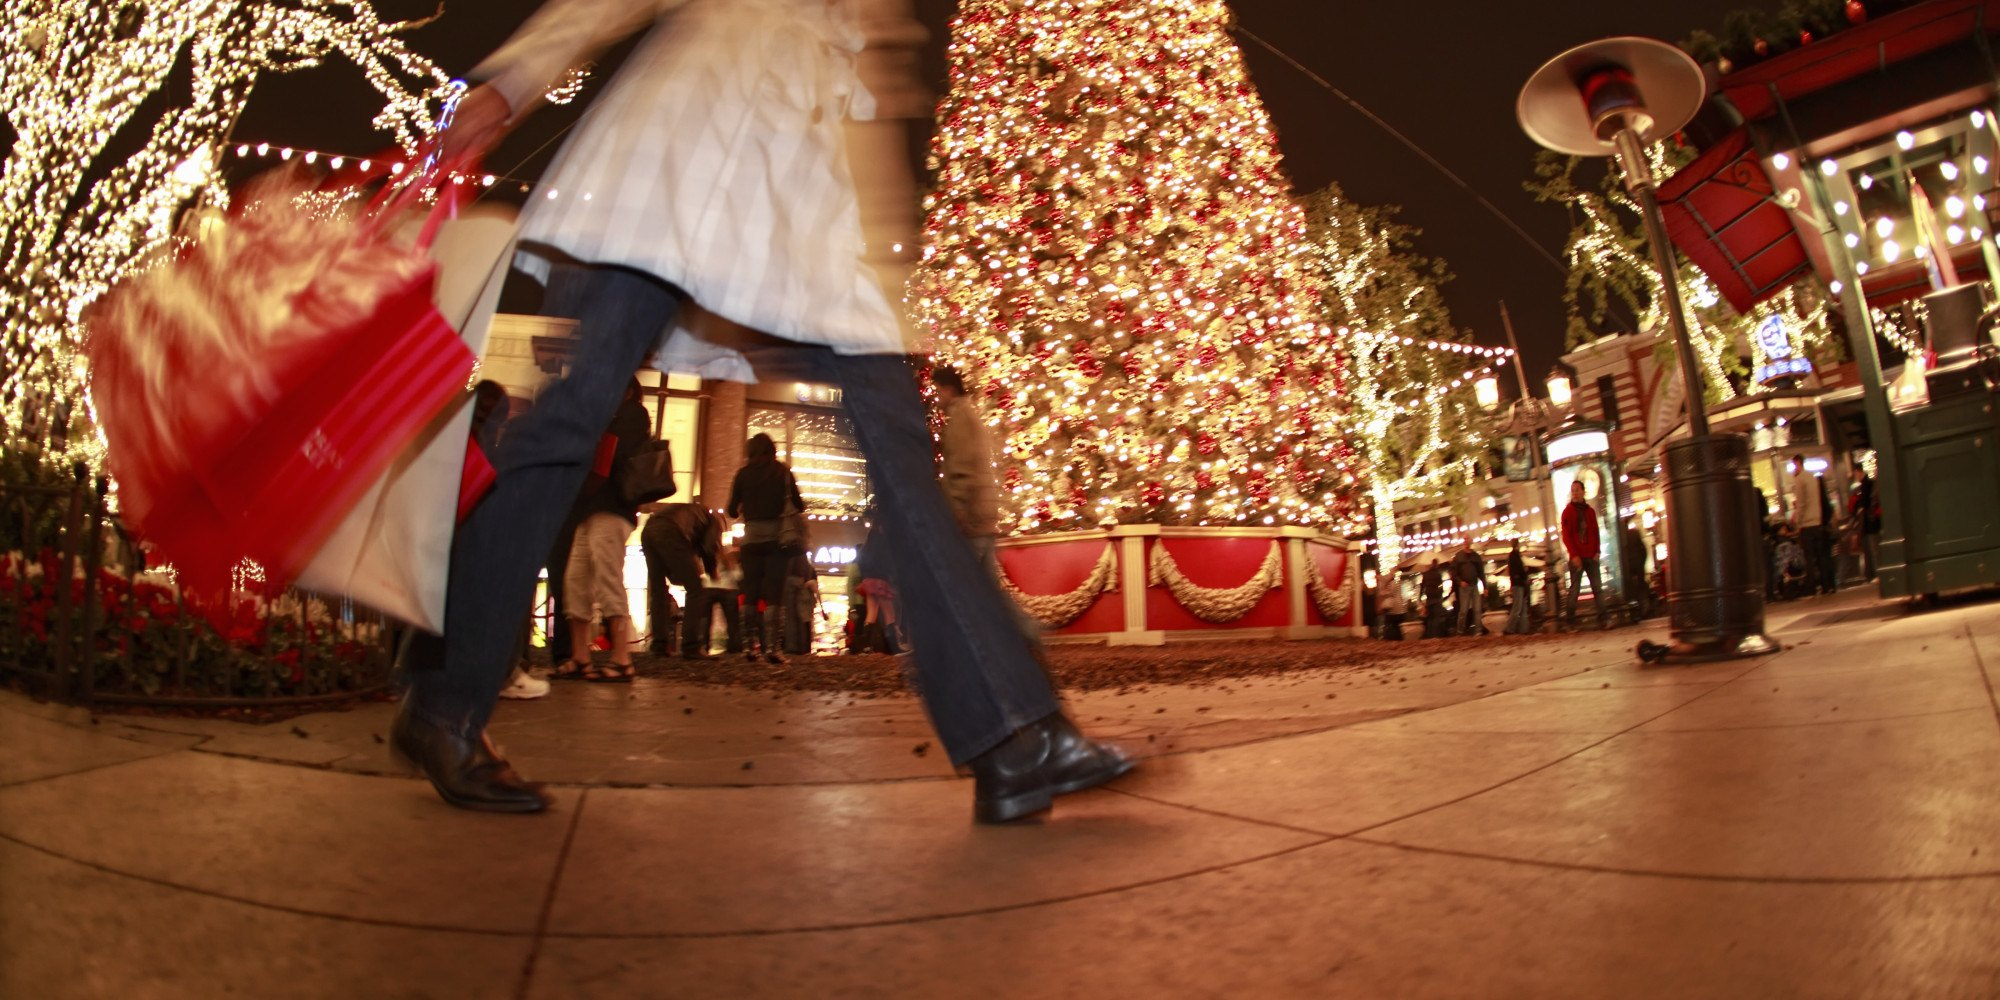 Get a Christmas Gift This Year with Frequent Flyer Points